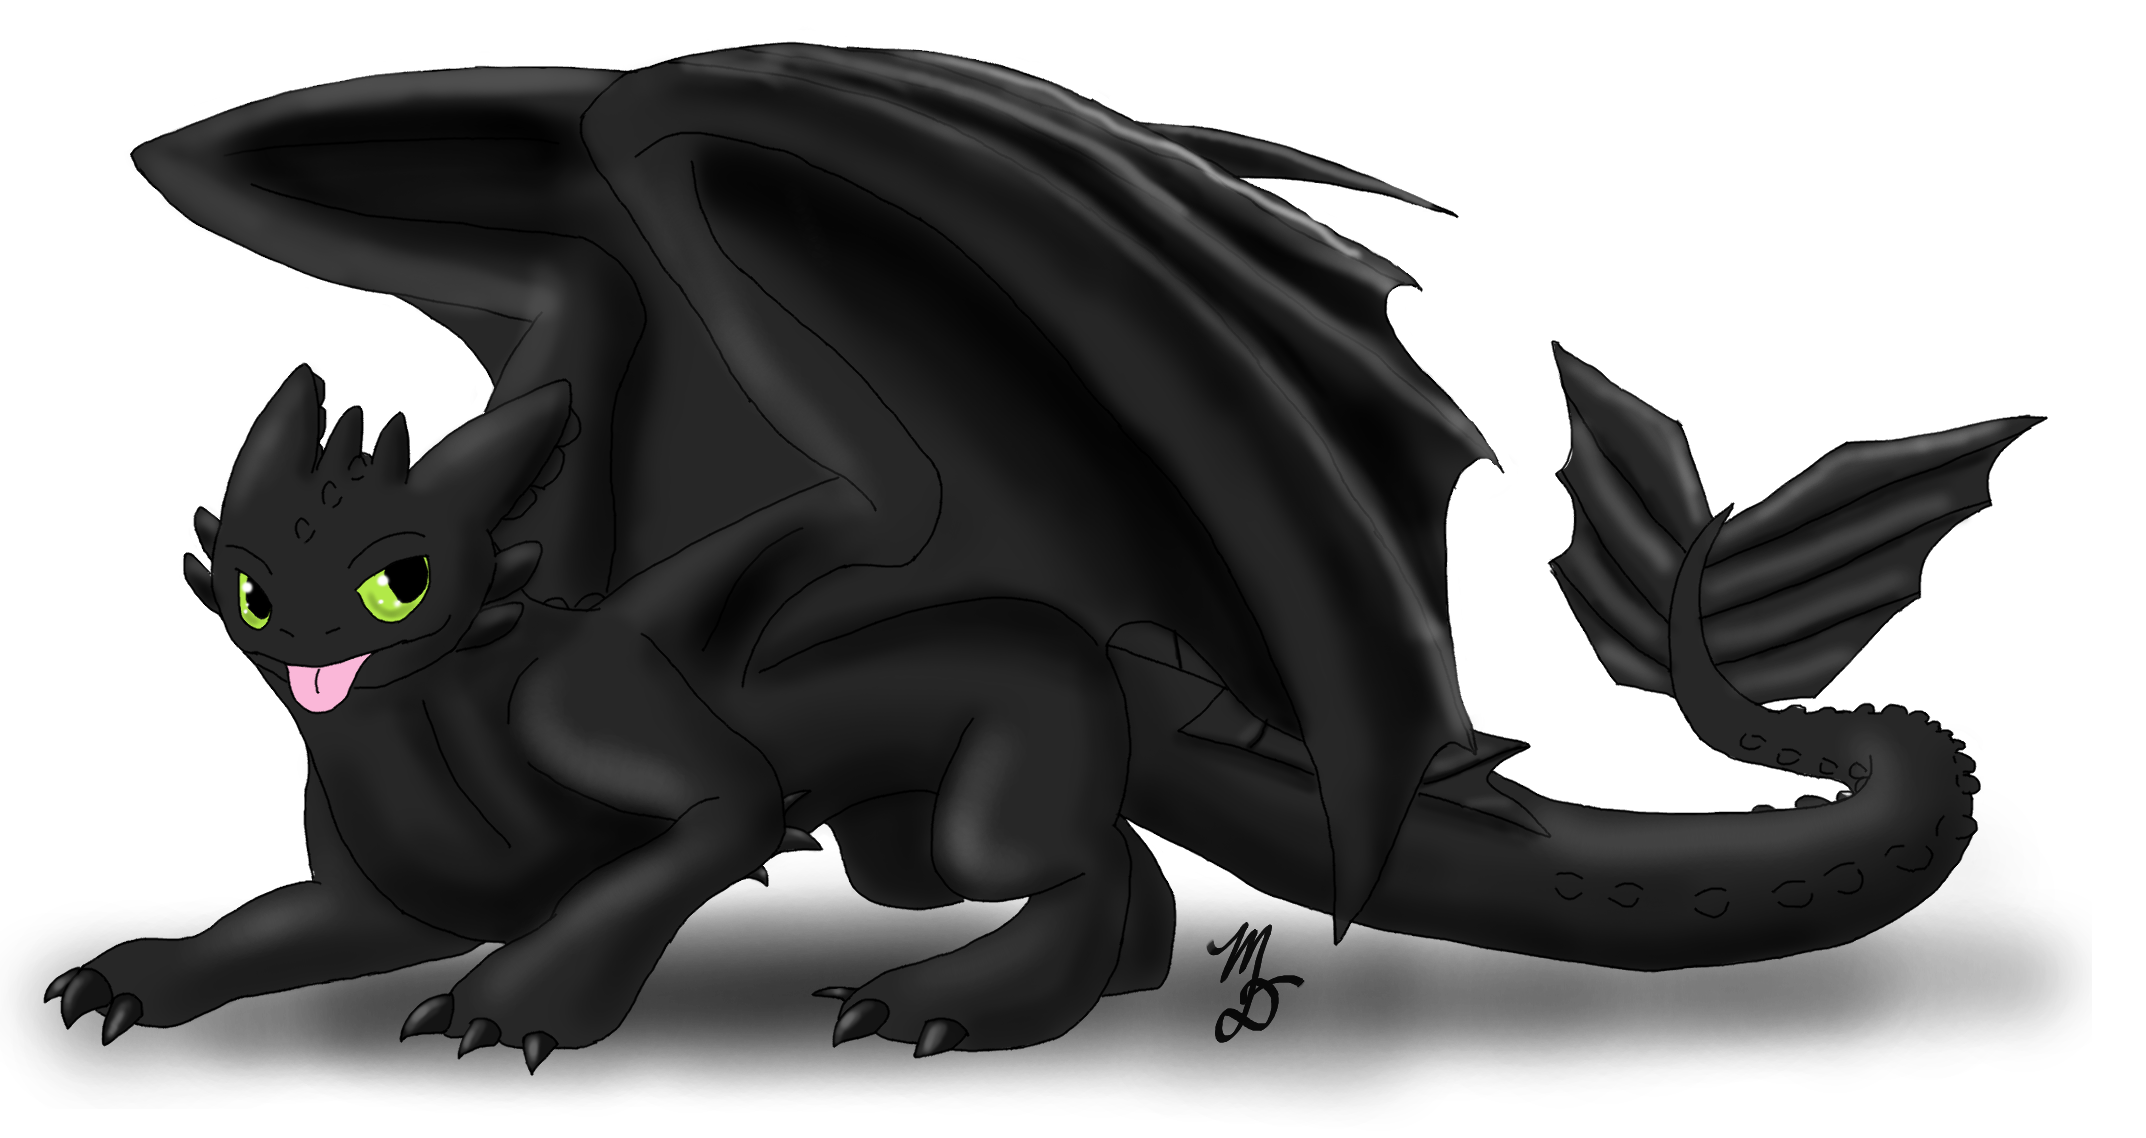 pictures of toothless toothless by zainnah on deviantart toothless pictures of